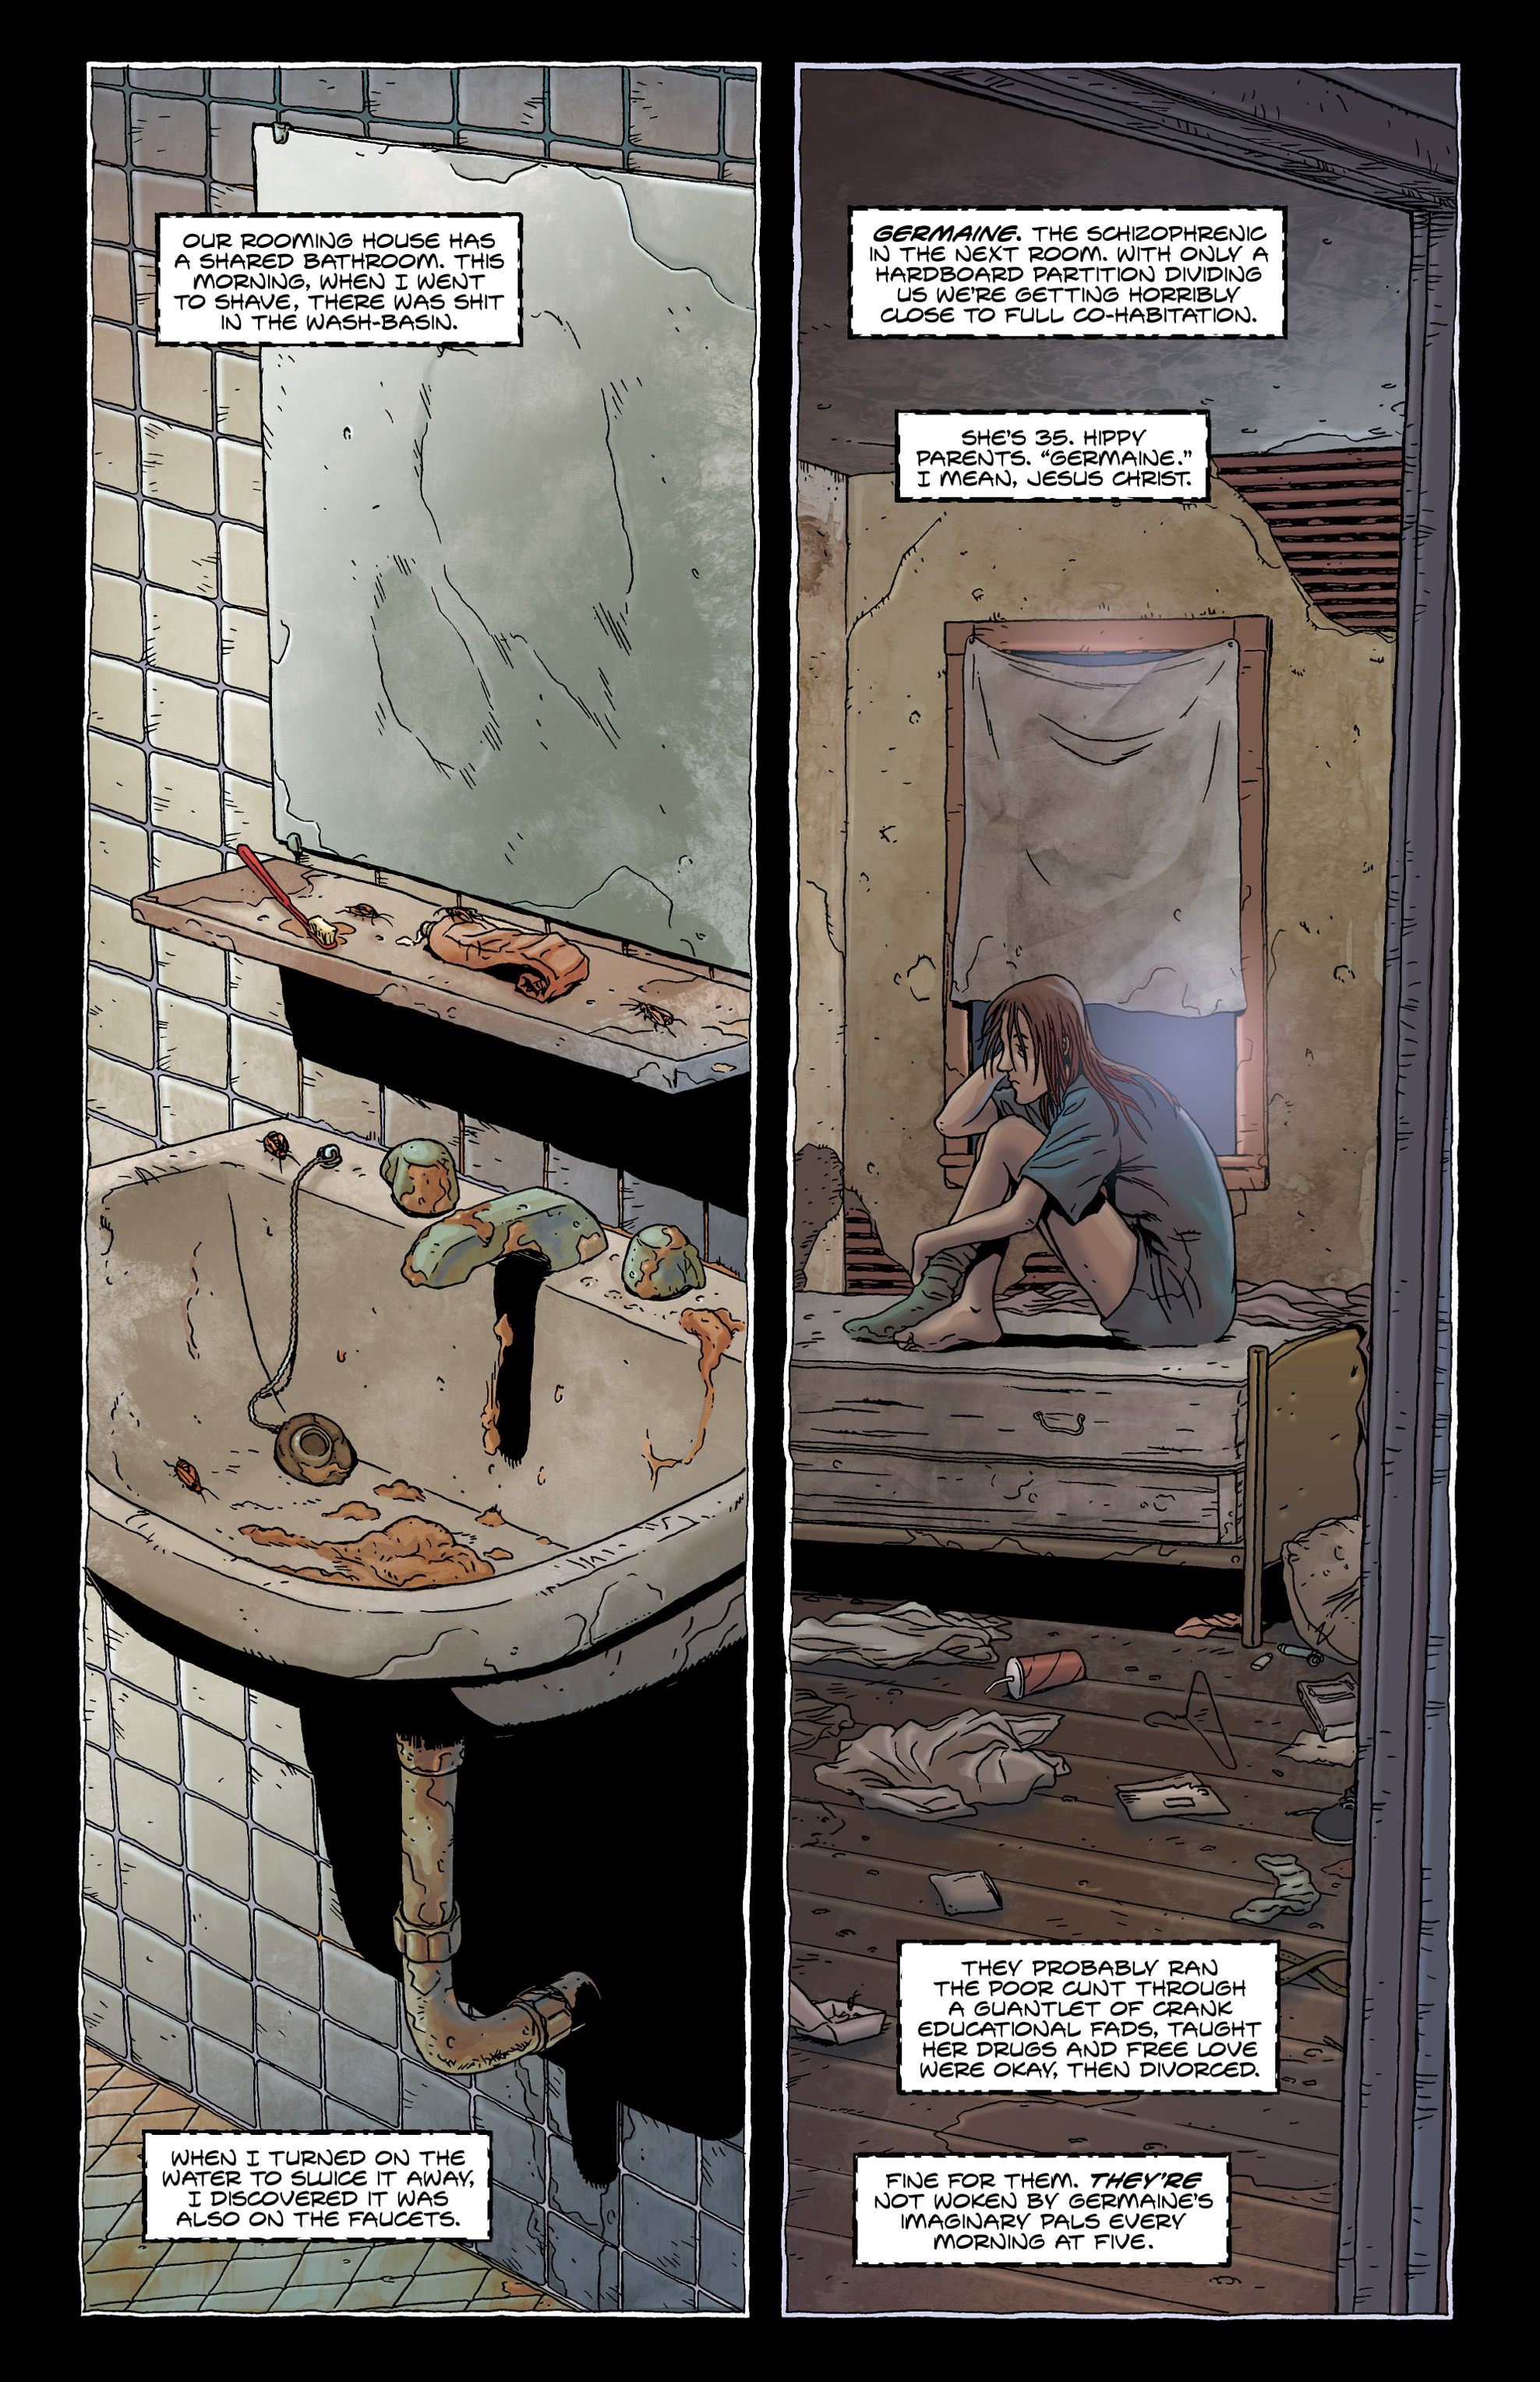 Read online Alan Moore's The Courtyard comic -  Issue # TPB - 9